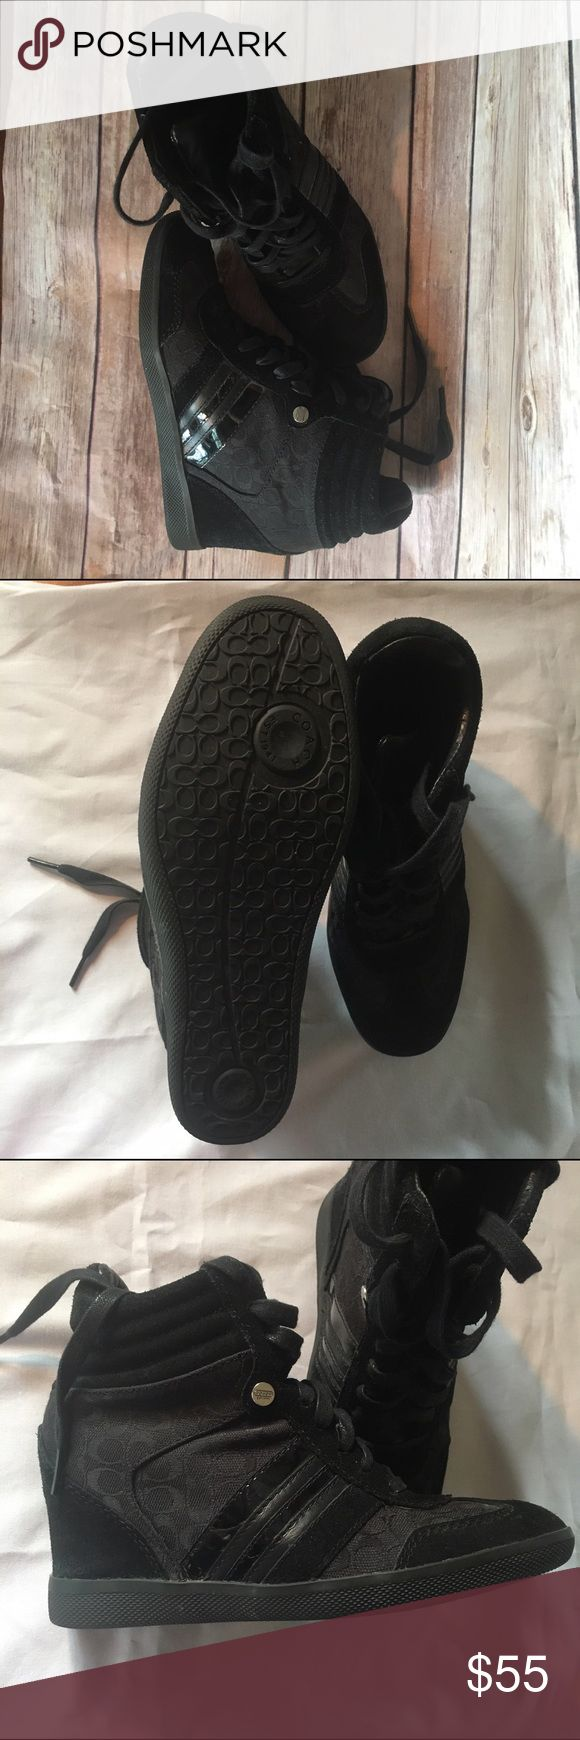 Like new coach alara hidden wedge sneakers Coach alara hidden wedge sneakers in black. These beauties are in a size 6M and feature the signature Coach print trimmed in suede and polished patent leather. Rubber sole. Silver coach charm and leather tongue. Worn once. Coach Shoes Sneakers